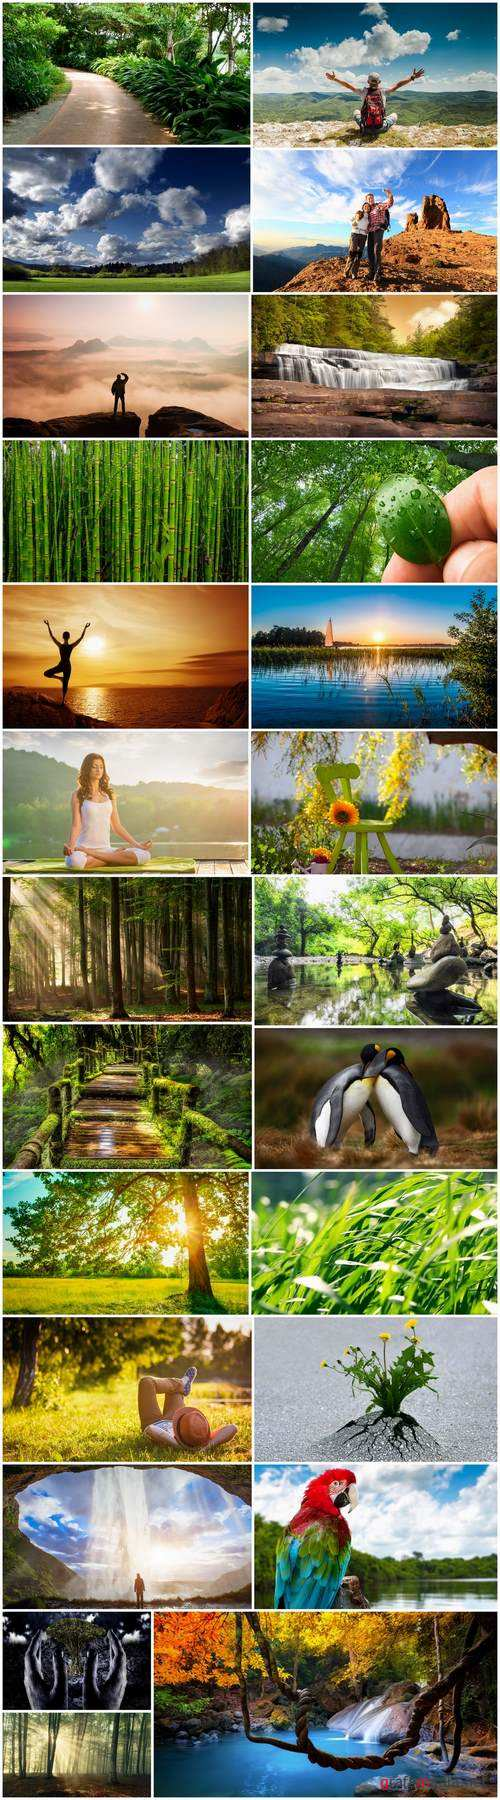 Nature landscape forest waterfall sprout vacation trip 25 HQ Jpeg